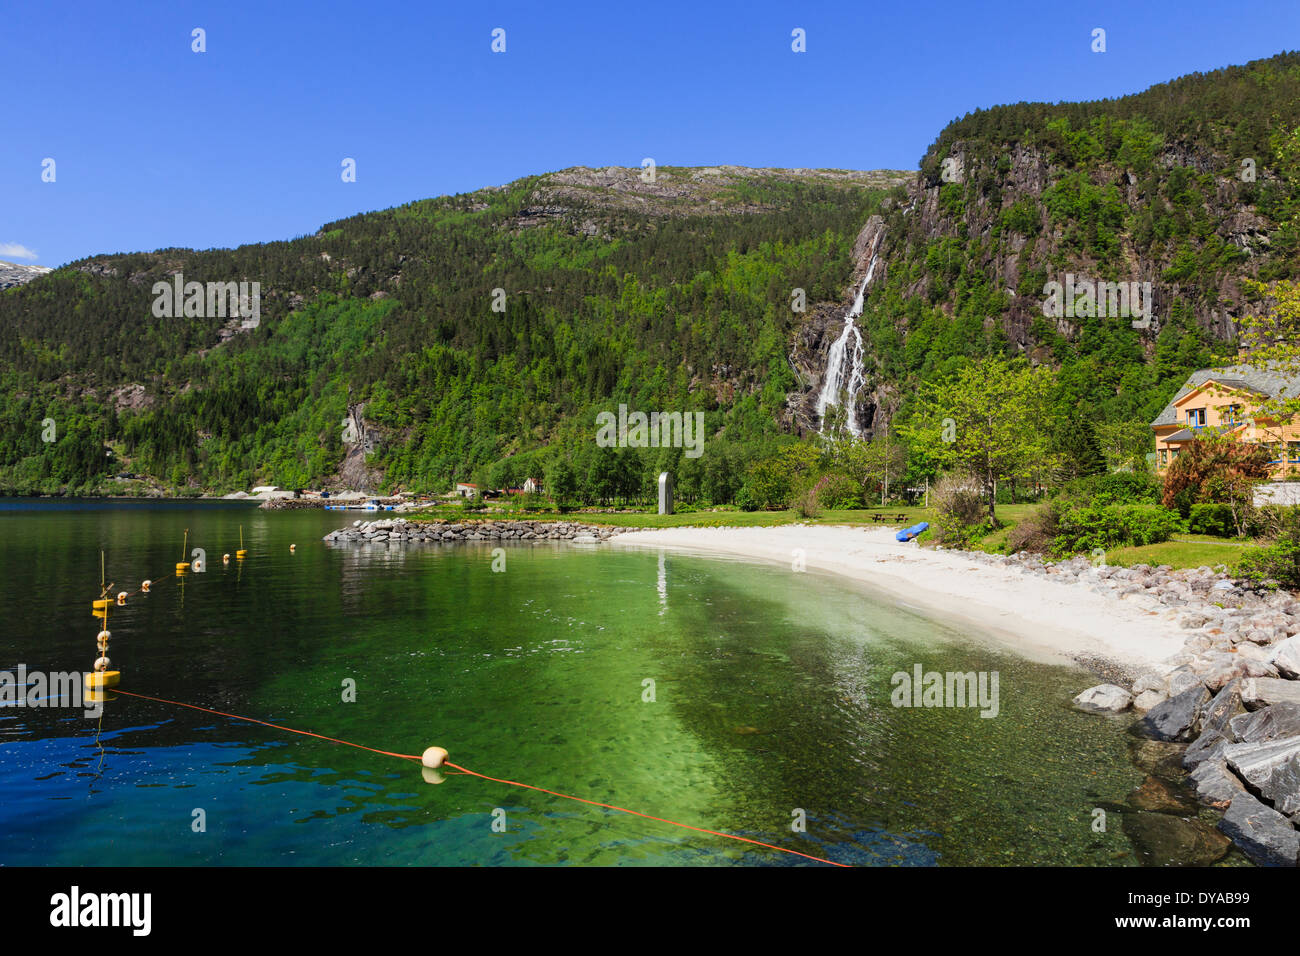 Waterfall and sandy beach with safe swimming at end of Mofjorden fjord. Mo, Modalen, Hordaland, Norway, Scandinavia - Stock Image